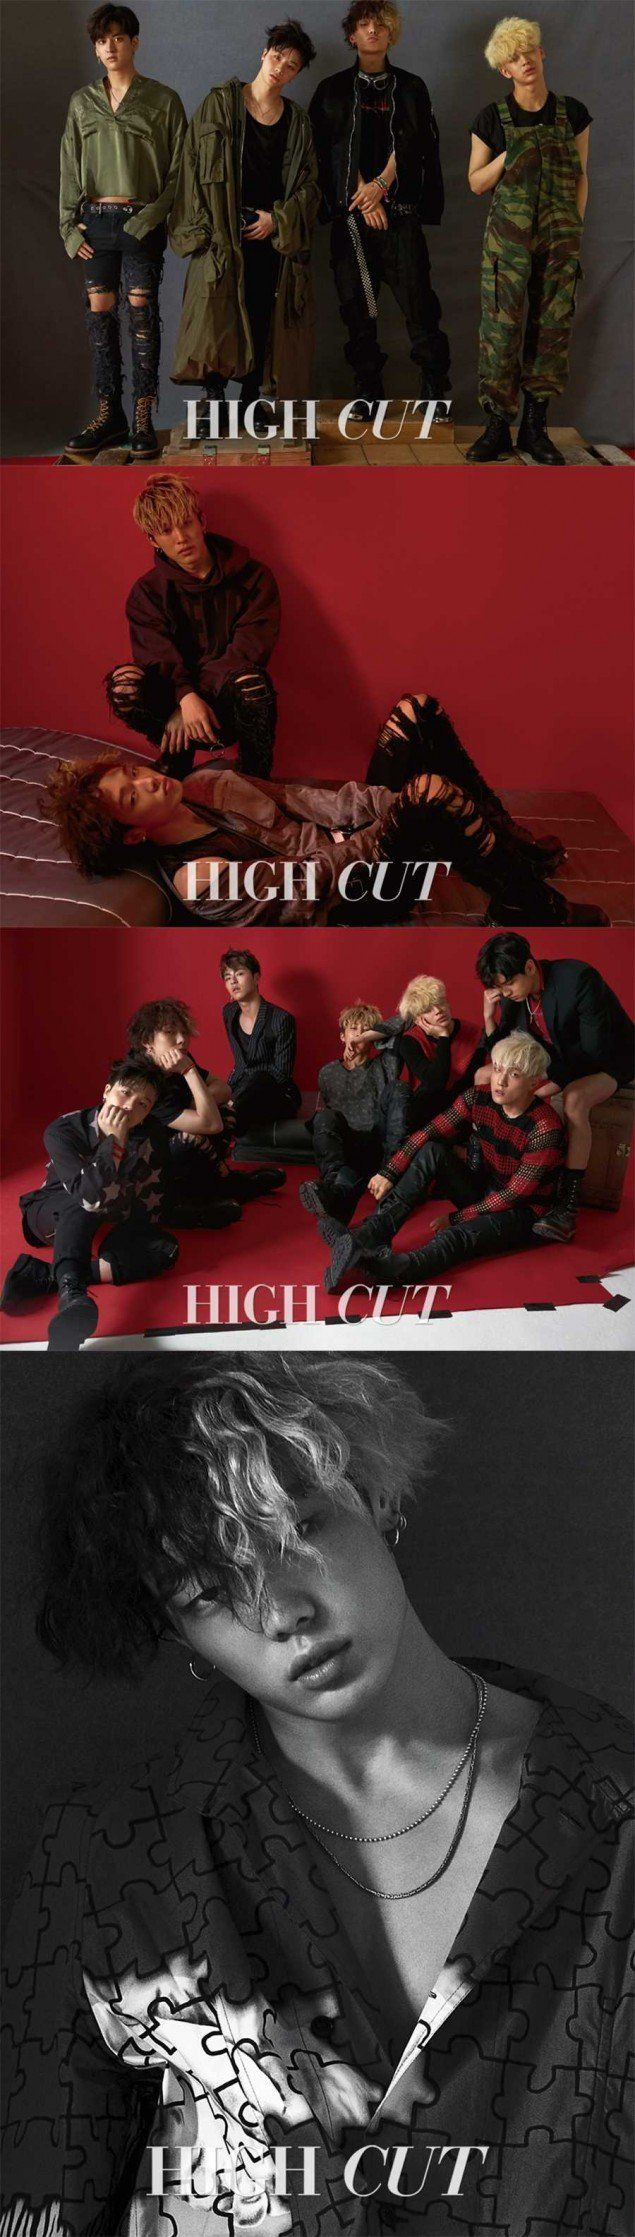 iKON see red on cover of 'High Cut' | allkpop.com